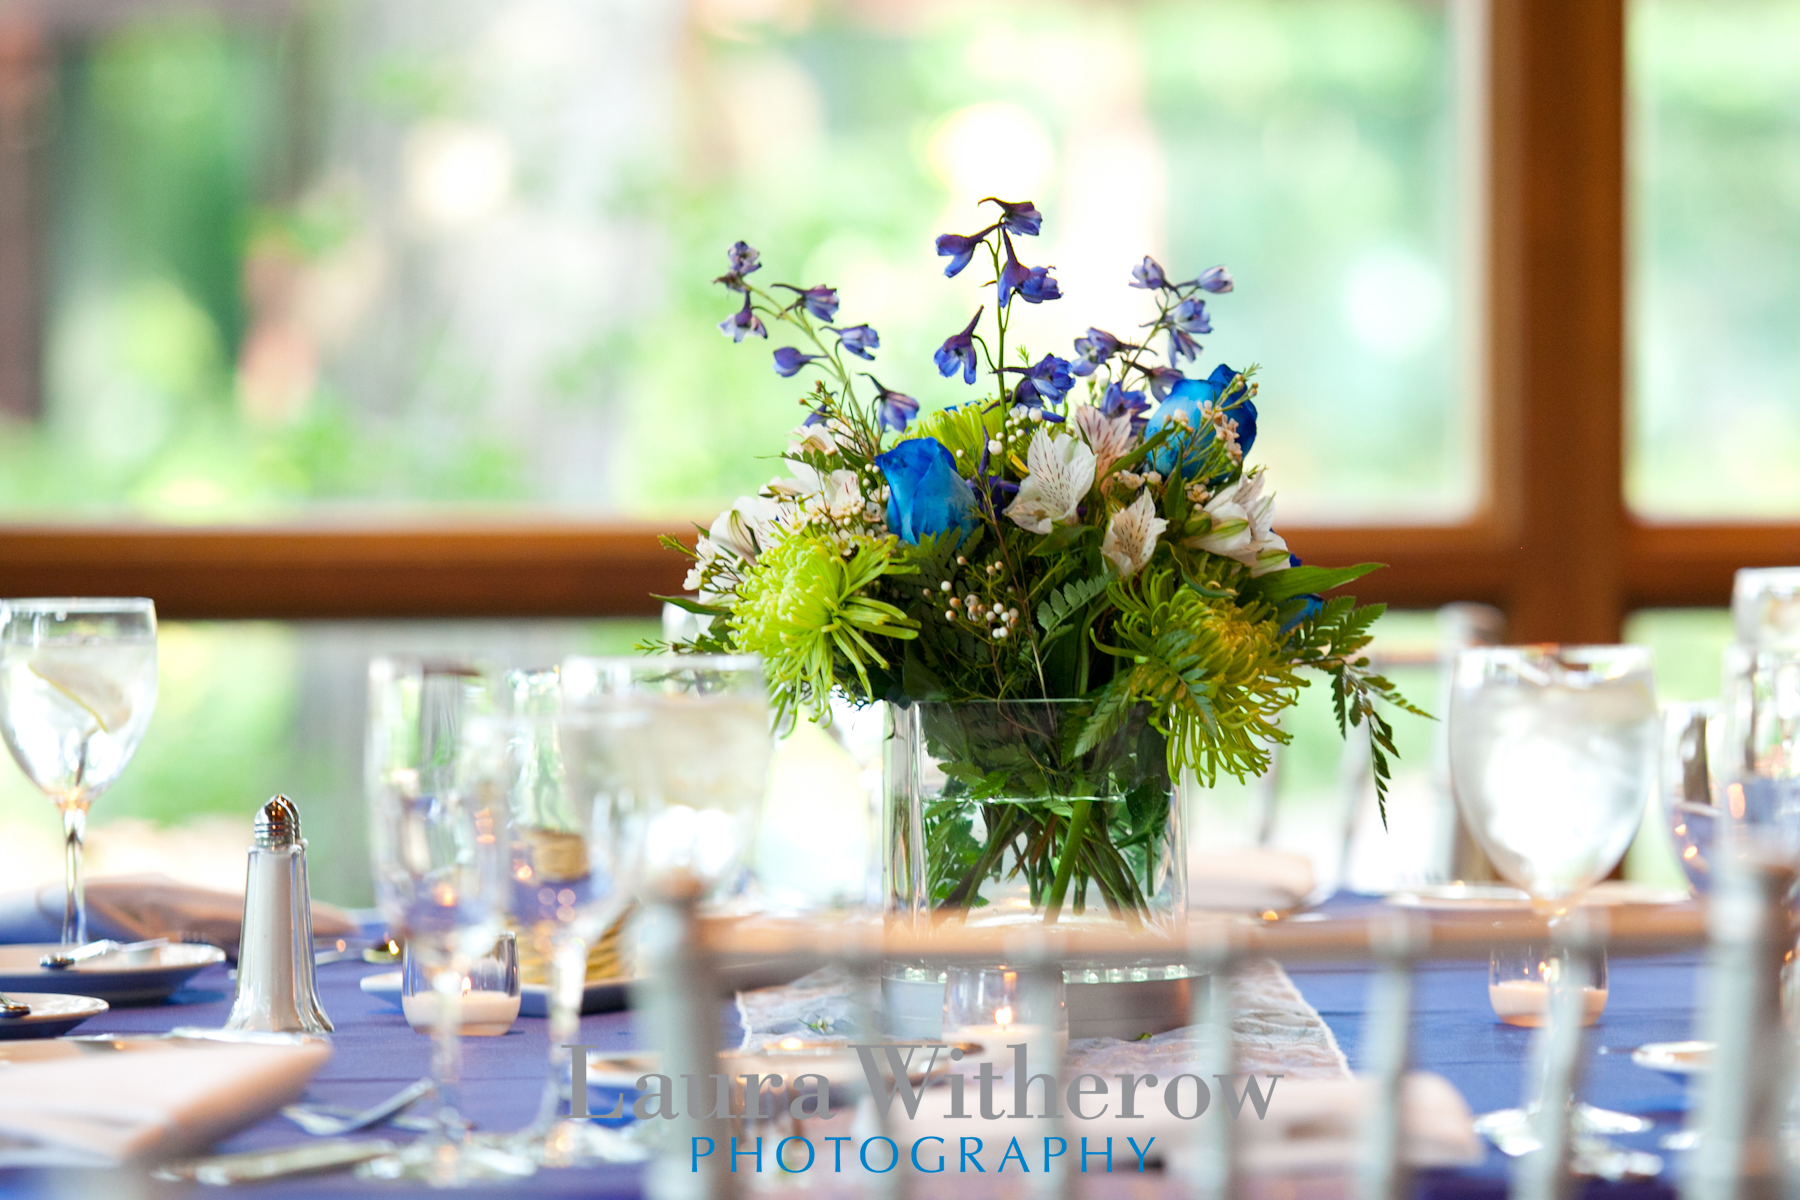 hyatt-lodge-chicago-weddings.jpg